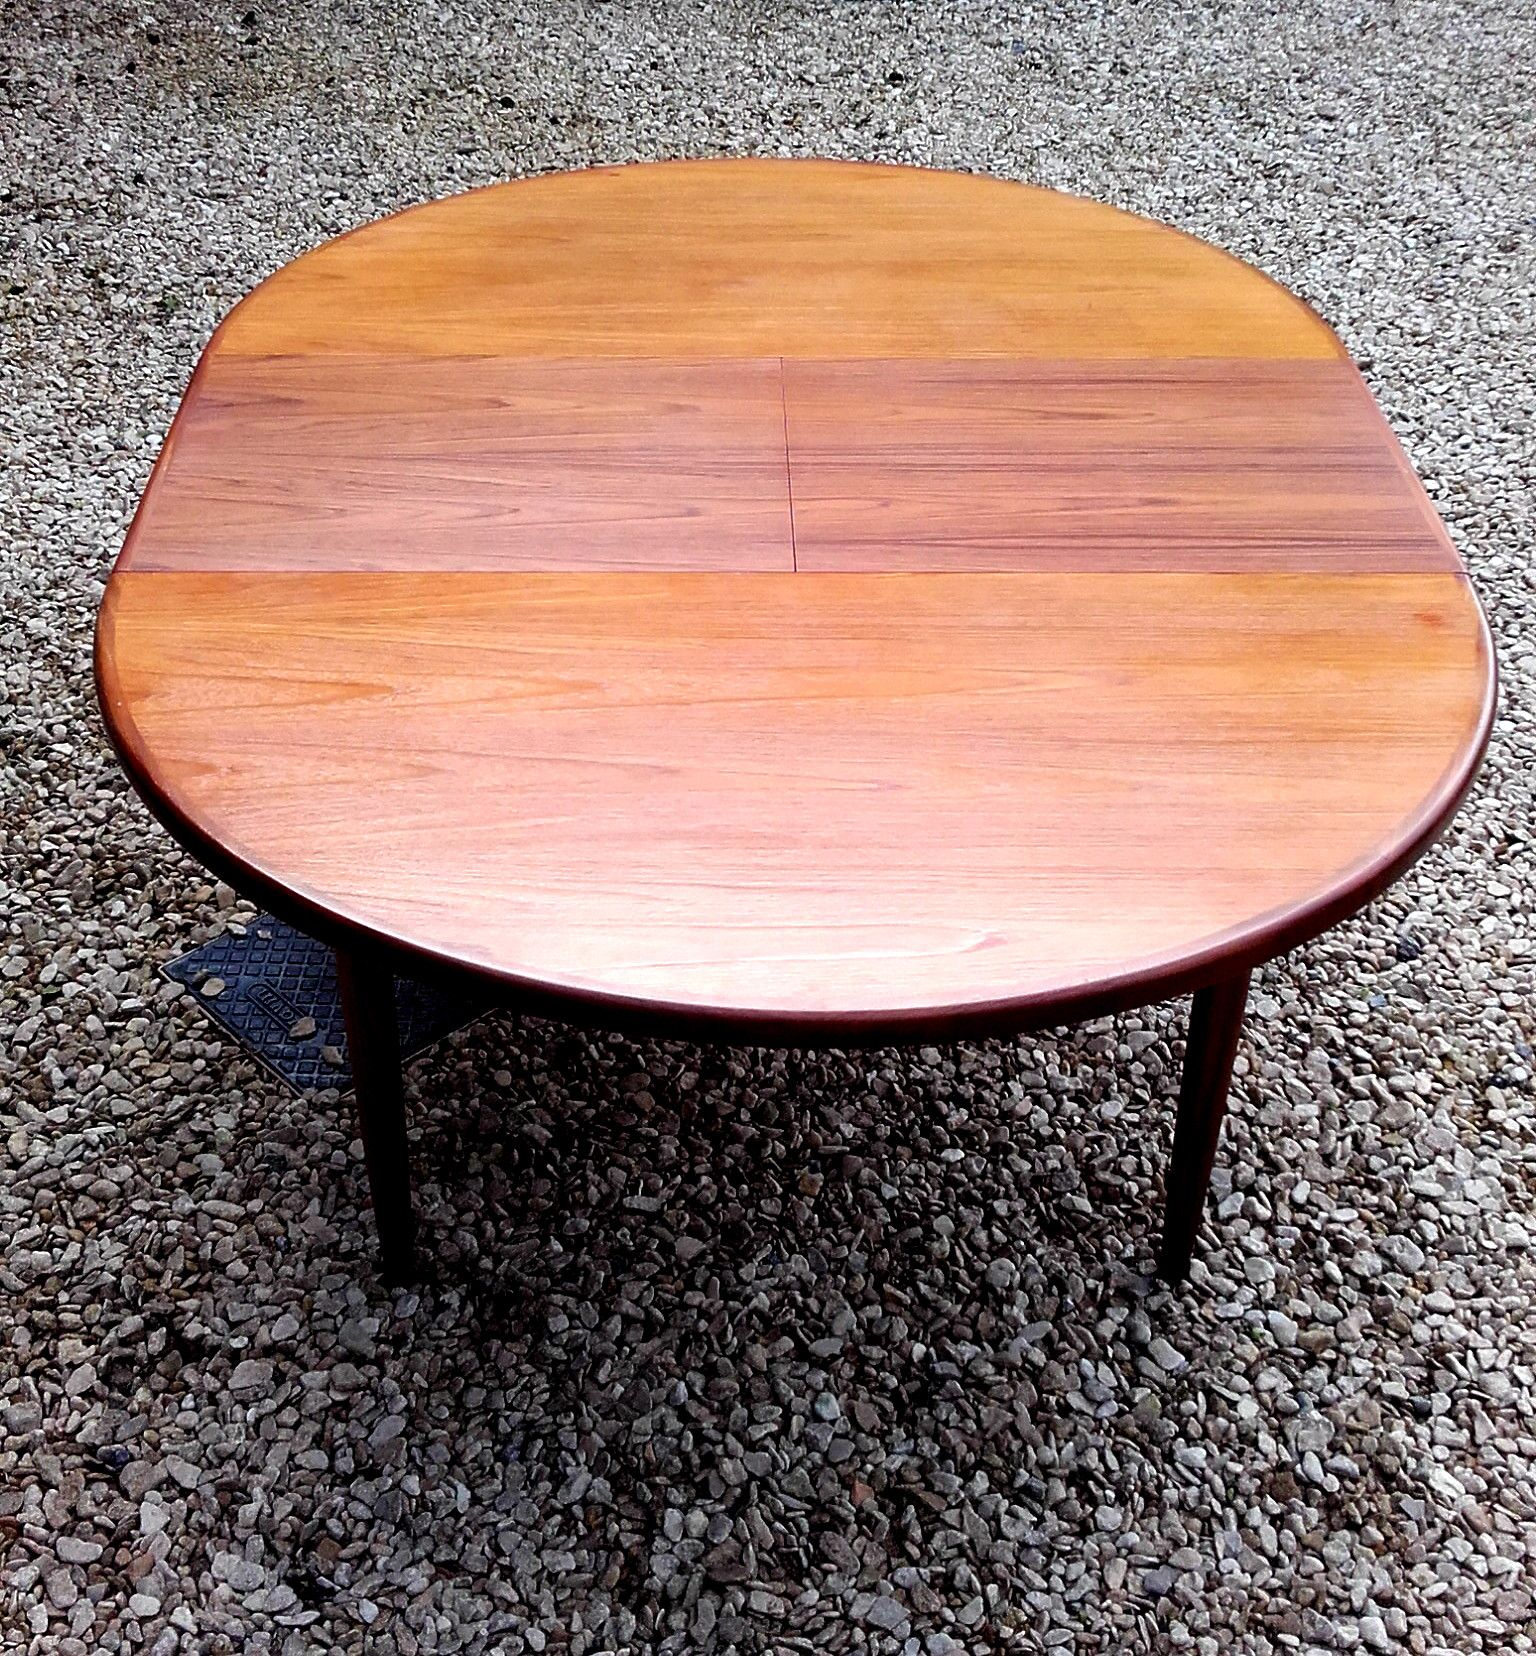 G Plan Fresco Circular Extending Dining Table This Is A Ravishingly Round G Plan Fresco Mid 20th Century Furniture Dining Table In Kitchen Mid Century Interior [ 1656 x 1536 Pixel ]